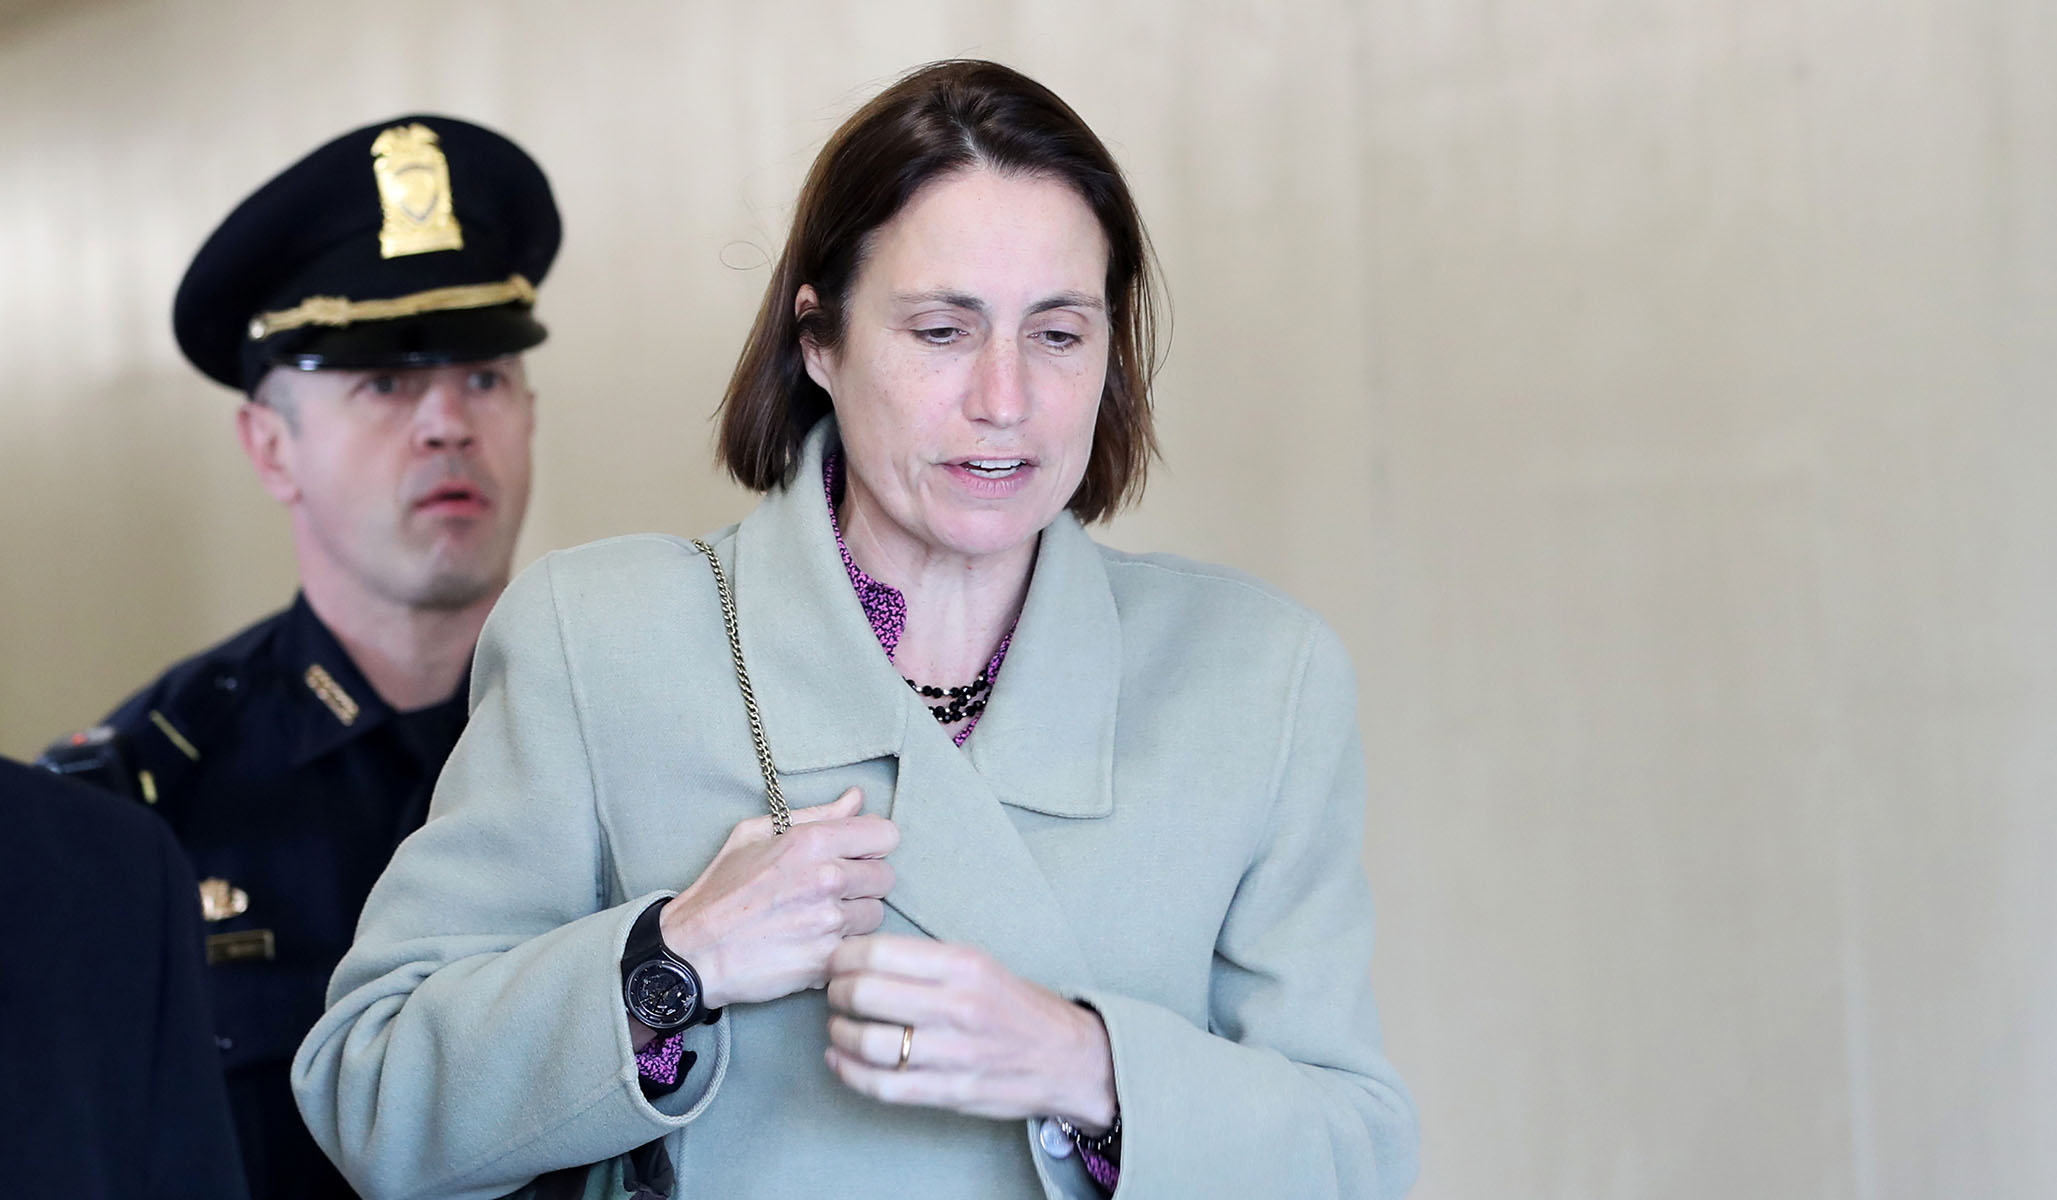 Fiona Hill Calls Ukrainian 2016 Election Interference 'Fictional Narrative' in Opening Statement